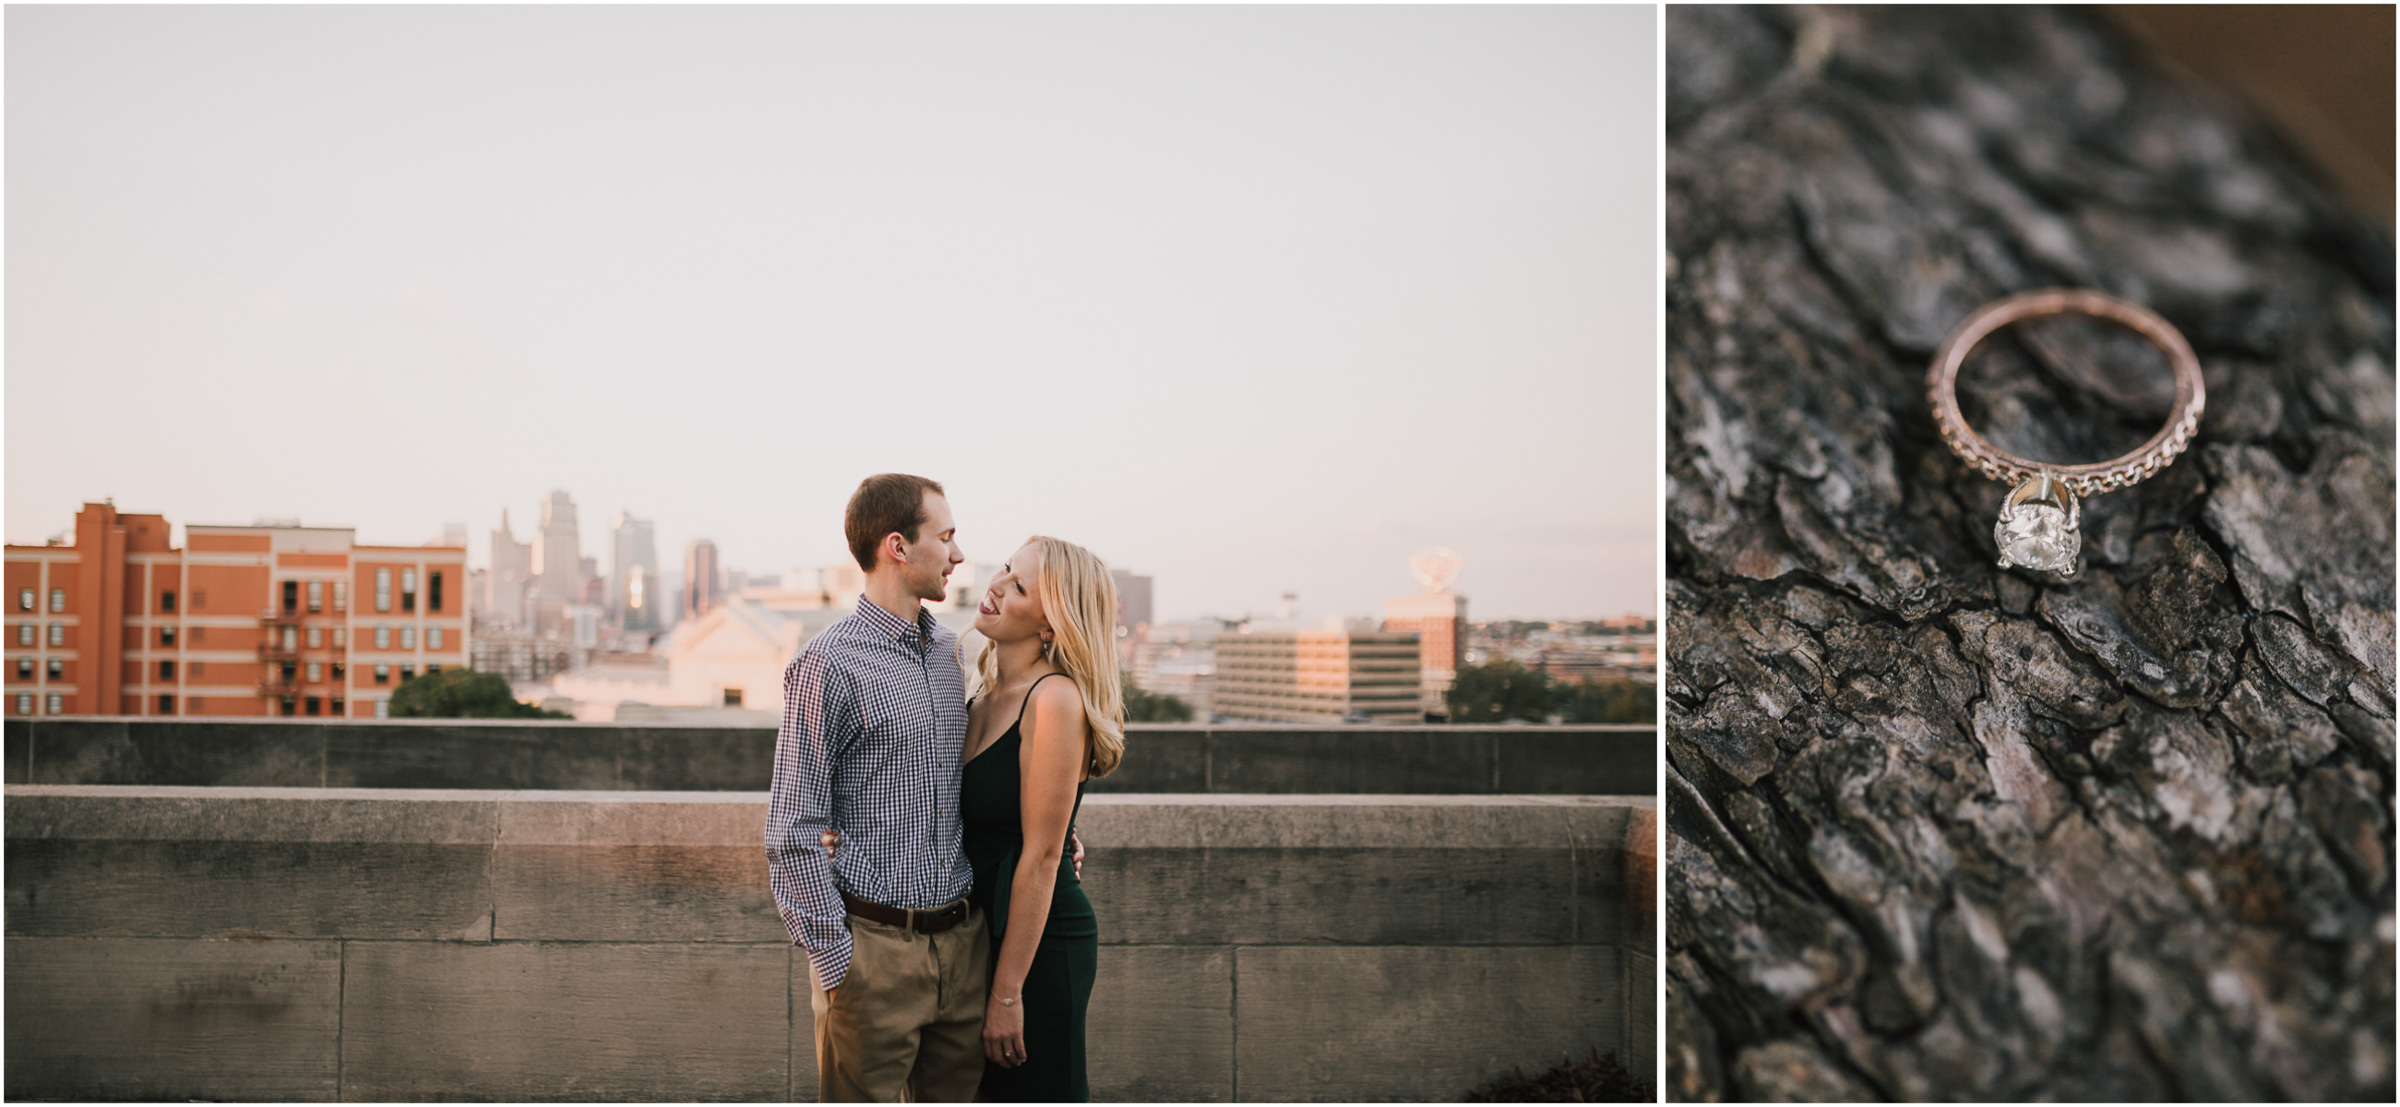 alyssa barletter photography nelson atkins art museum classic summer engagement session with dog-23.jpg